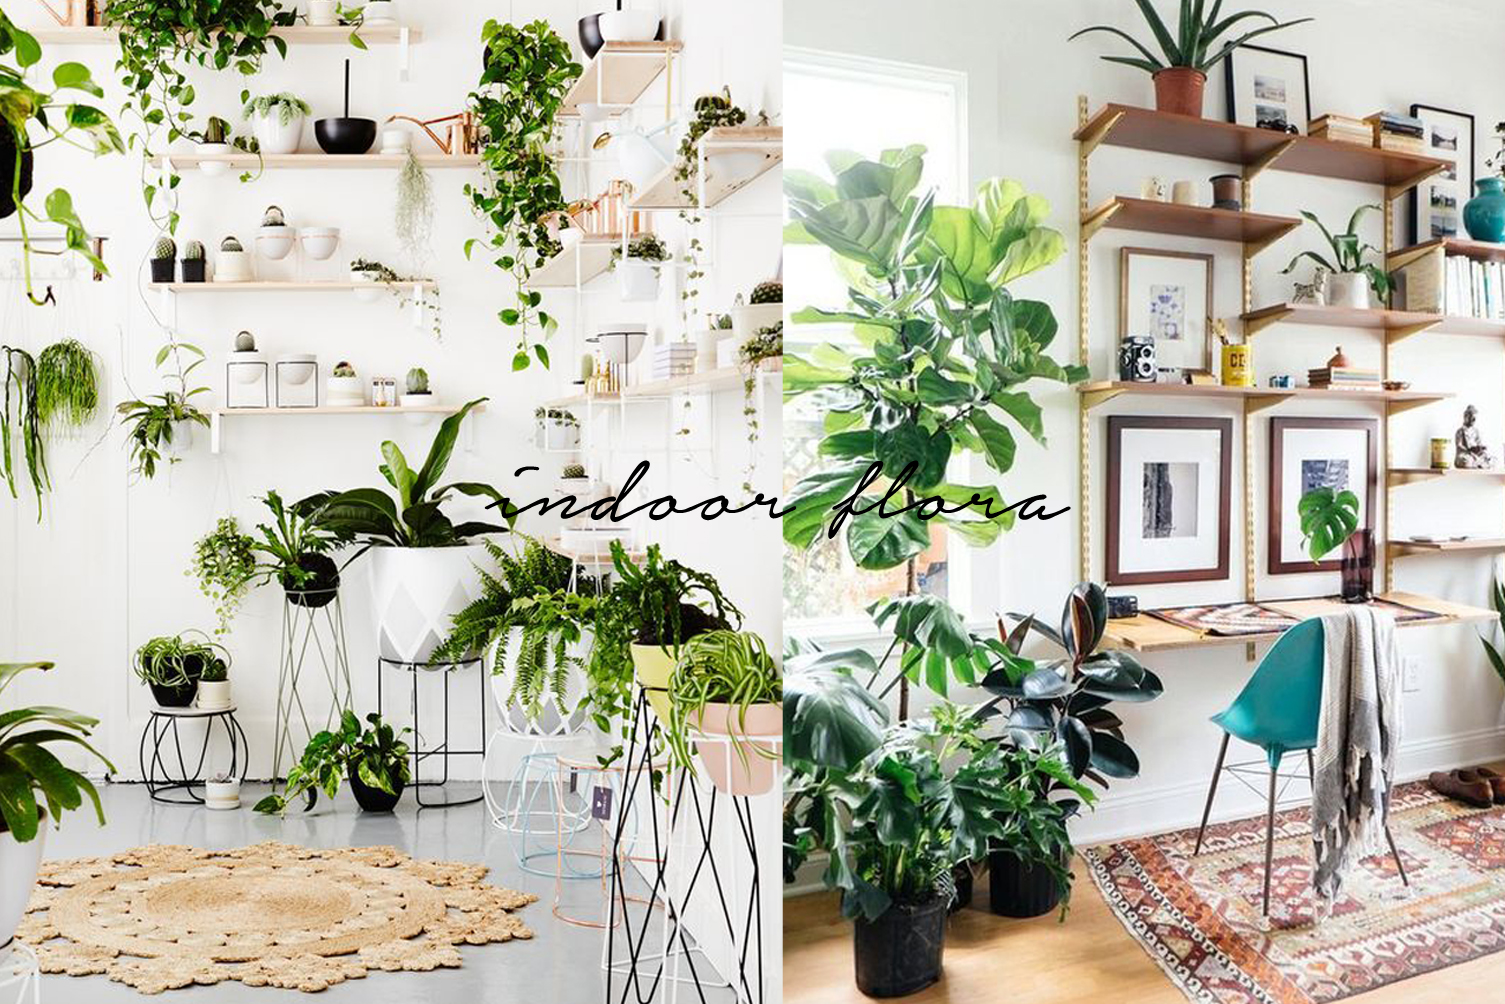 pantone greenery color of the year indoor plant inspiration